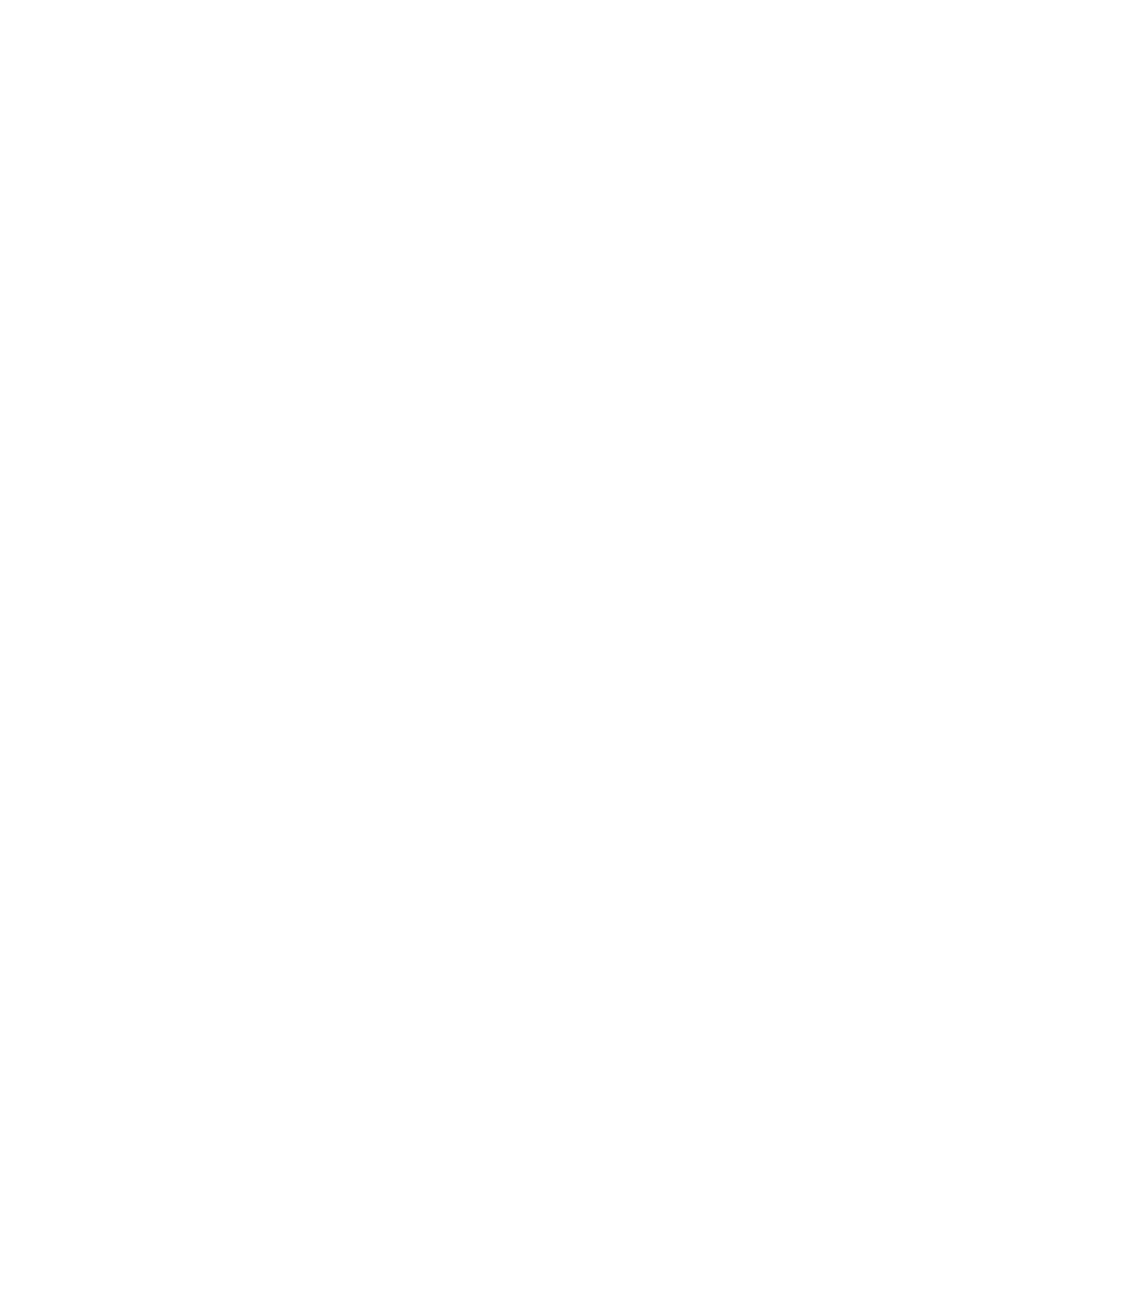 chris_fishing_logo_whitepng